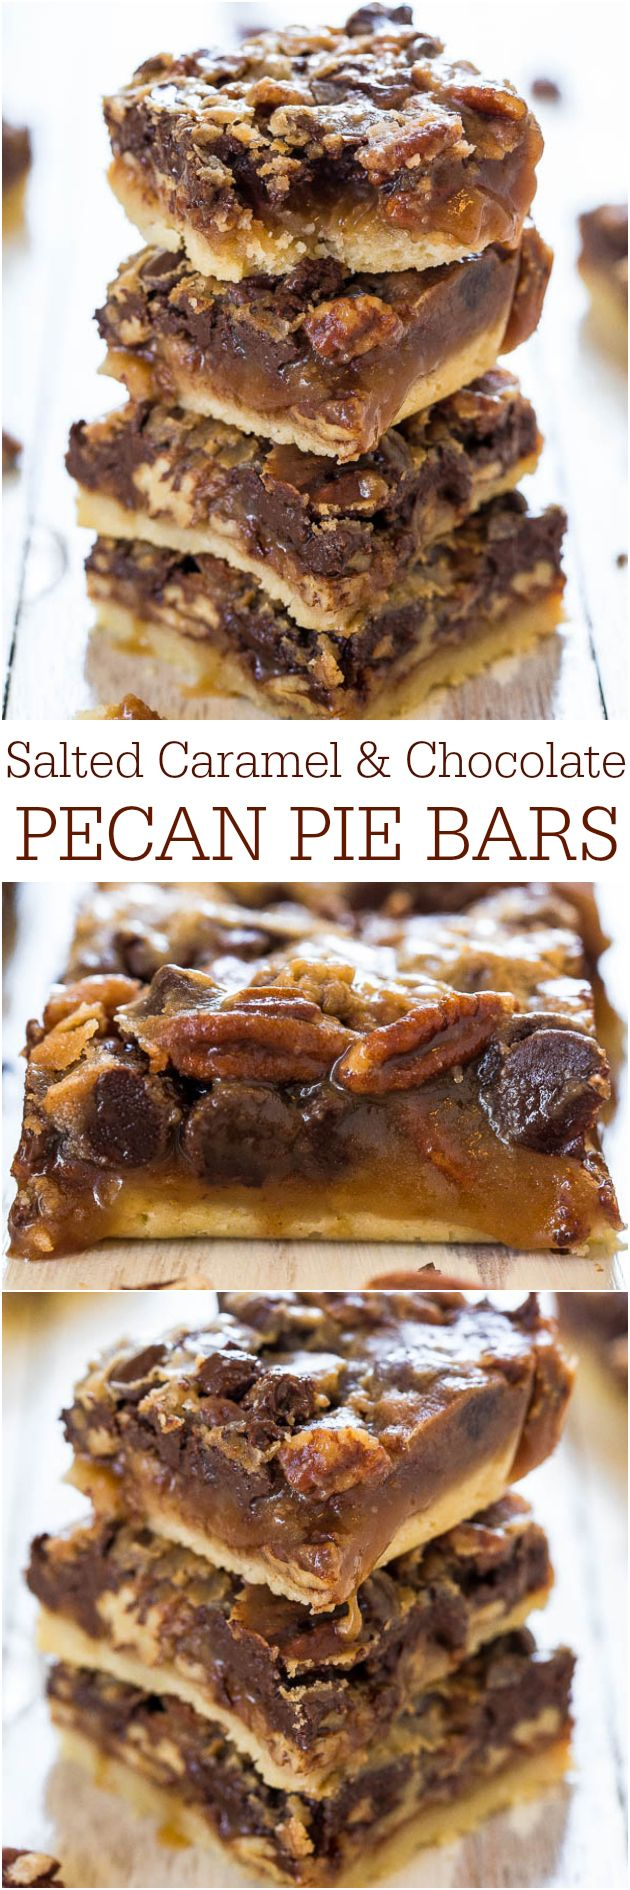 Salted Caramel and Chocolate Pecan Pie Bars - You'll never want plain pecan pie again! Caramel and chocolate makes the bars taste amazing! Your dad will love these for #FathersDay !